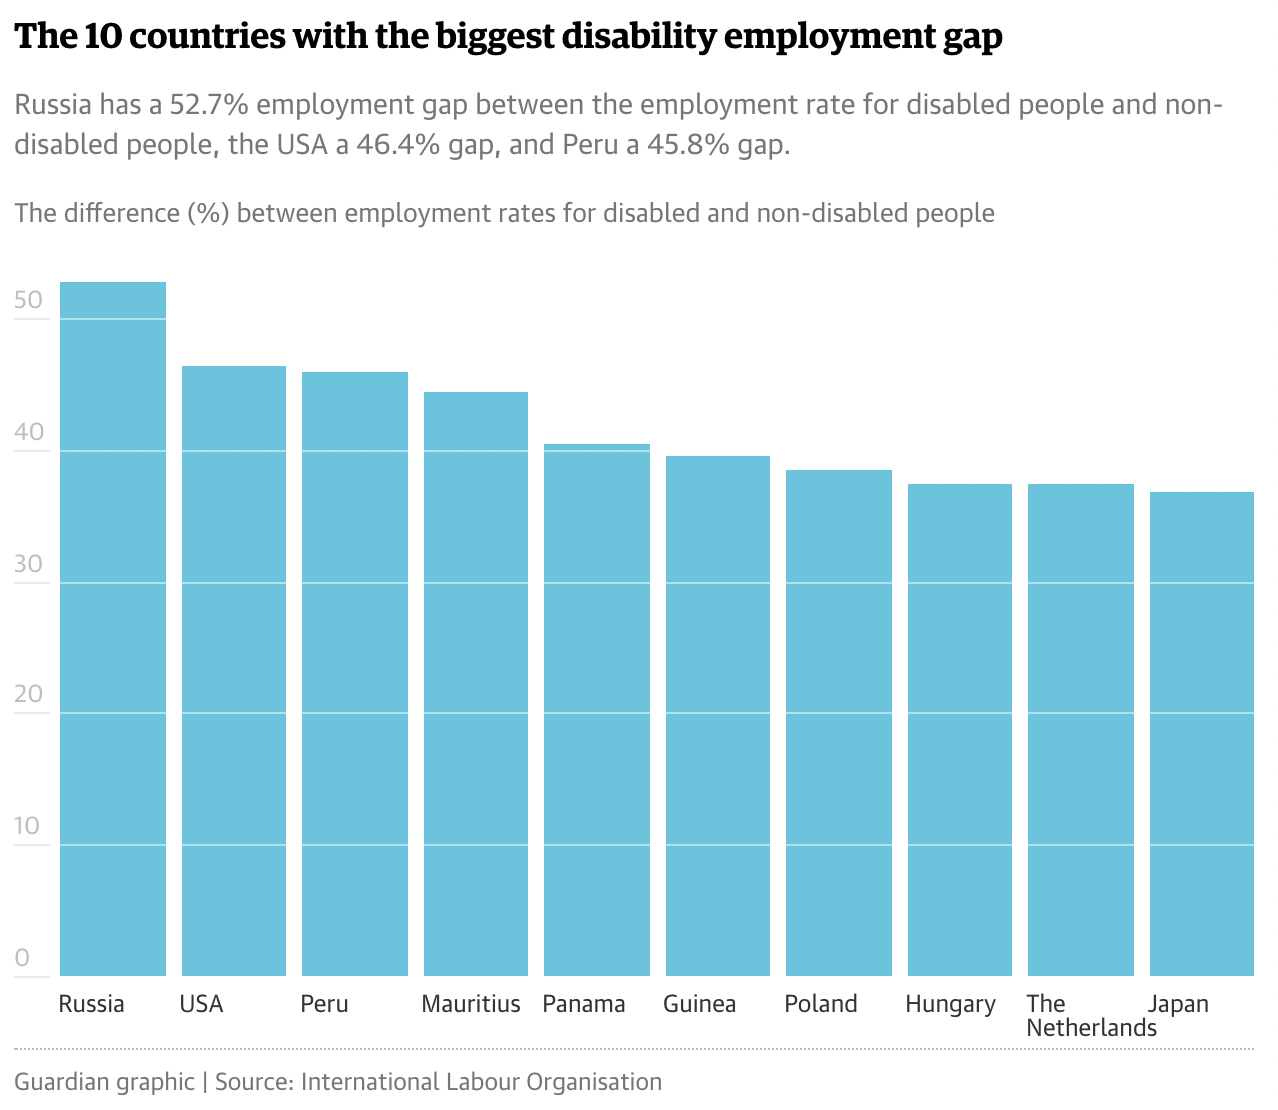 A chart showing 10 countries with the largest disability employment gaps. Leading with the biggest employment gap, the countries include: Russia, USA, Peru, Mauritius, Panama, Guinea, Poland, Hungary, The Netherlands, Japan. Russia leads with a 52.7% employment gap between the employment rate for disabled people and non-disabled people, the USA a 46.4% gap, and Peru a 45.8% gap.